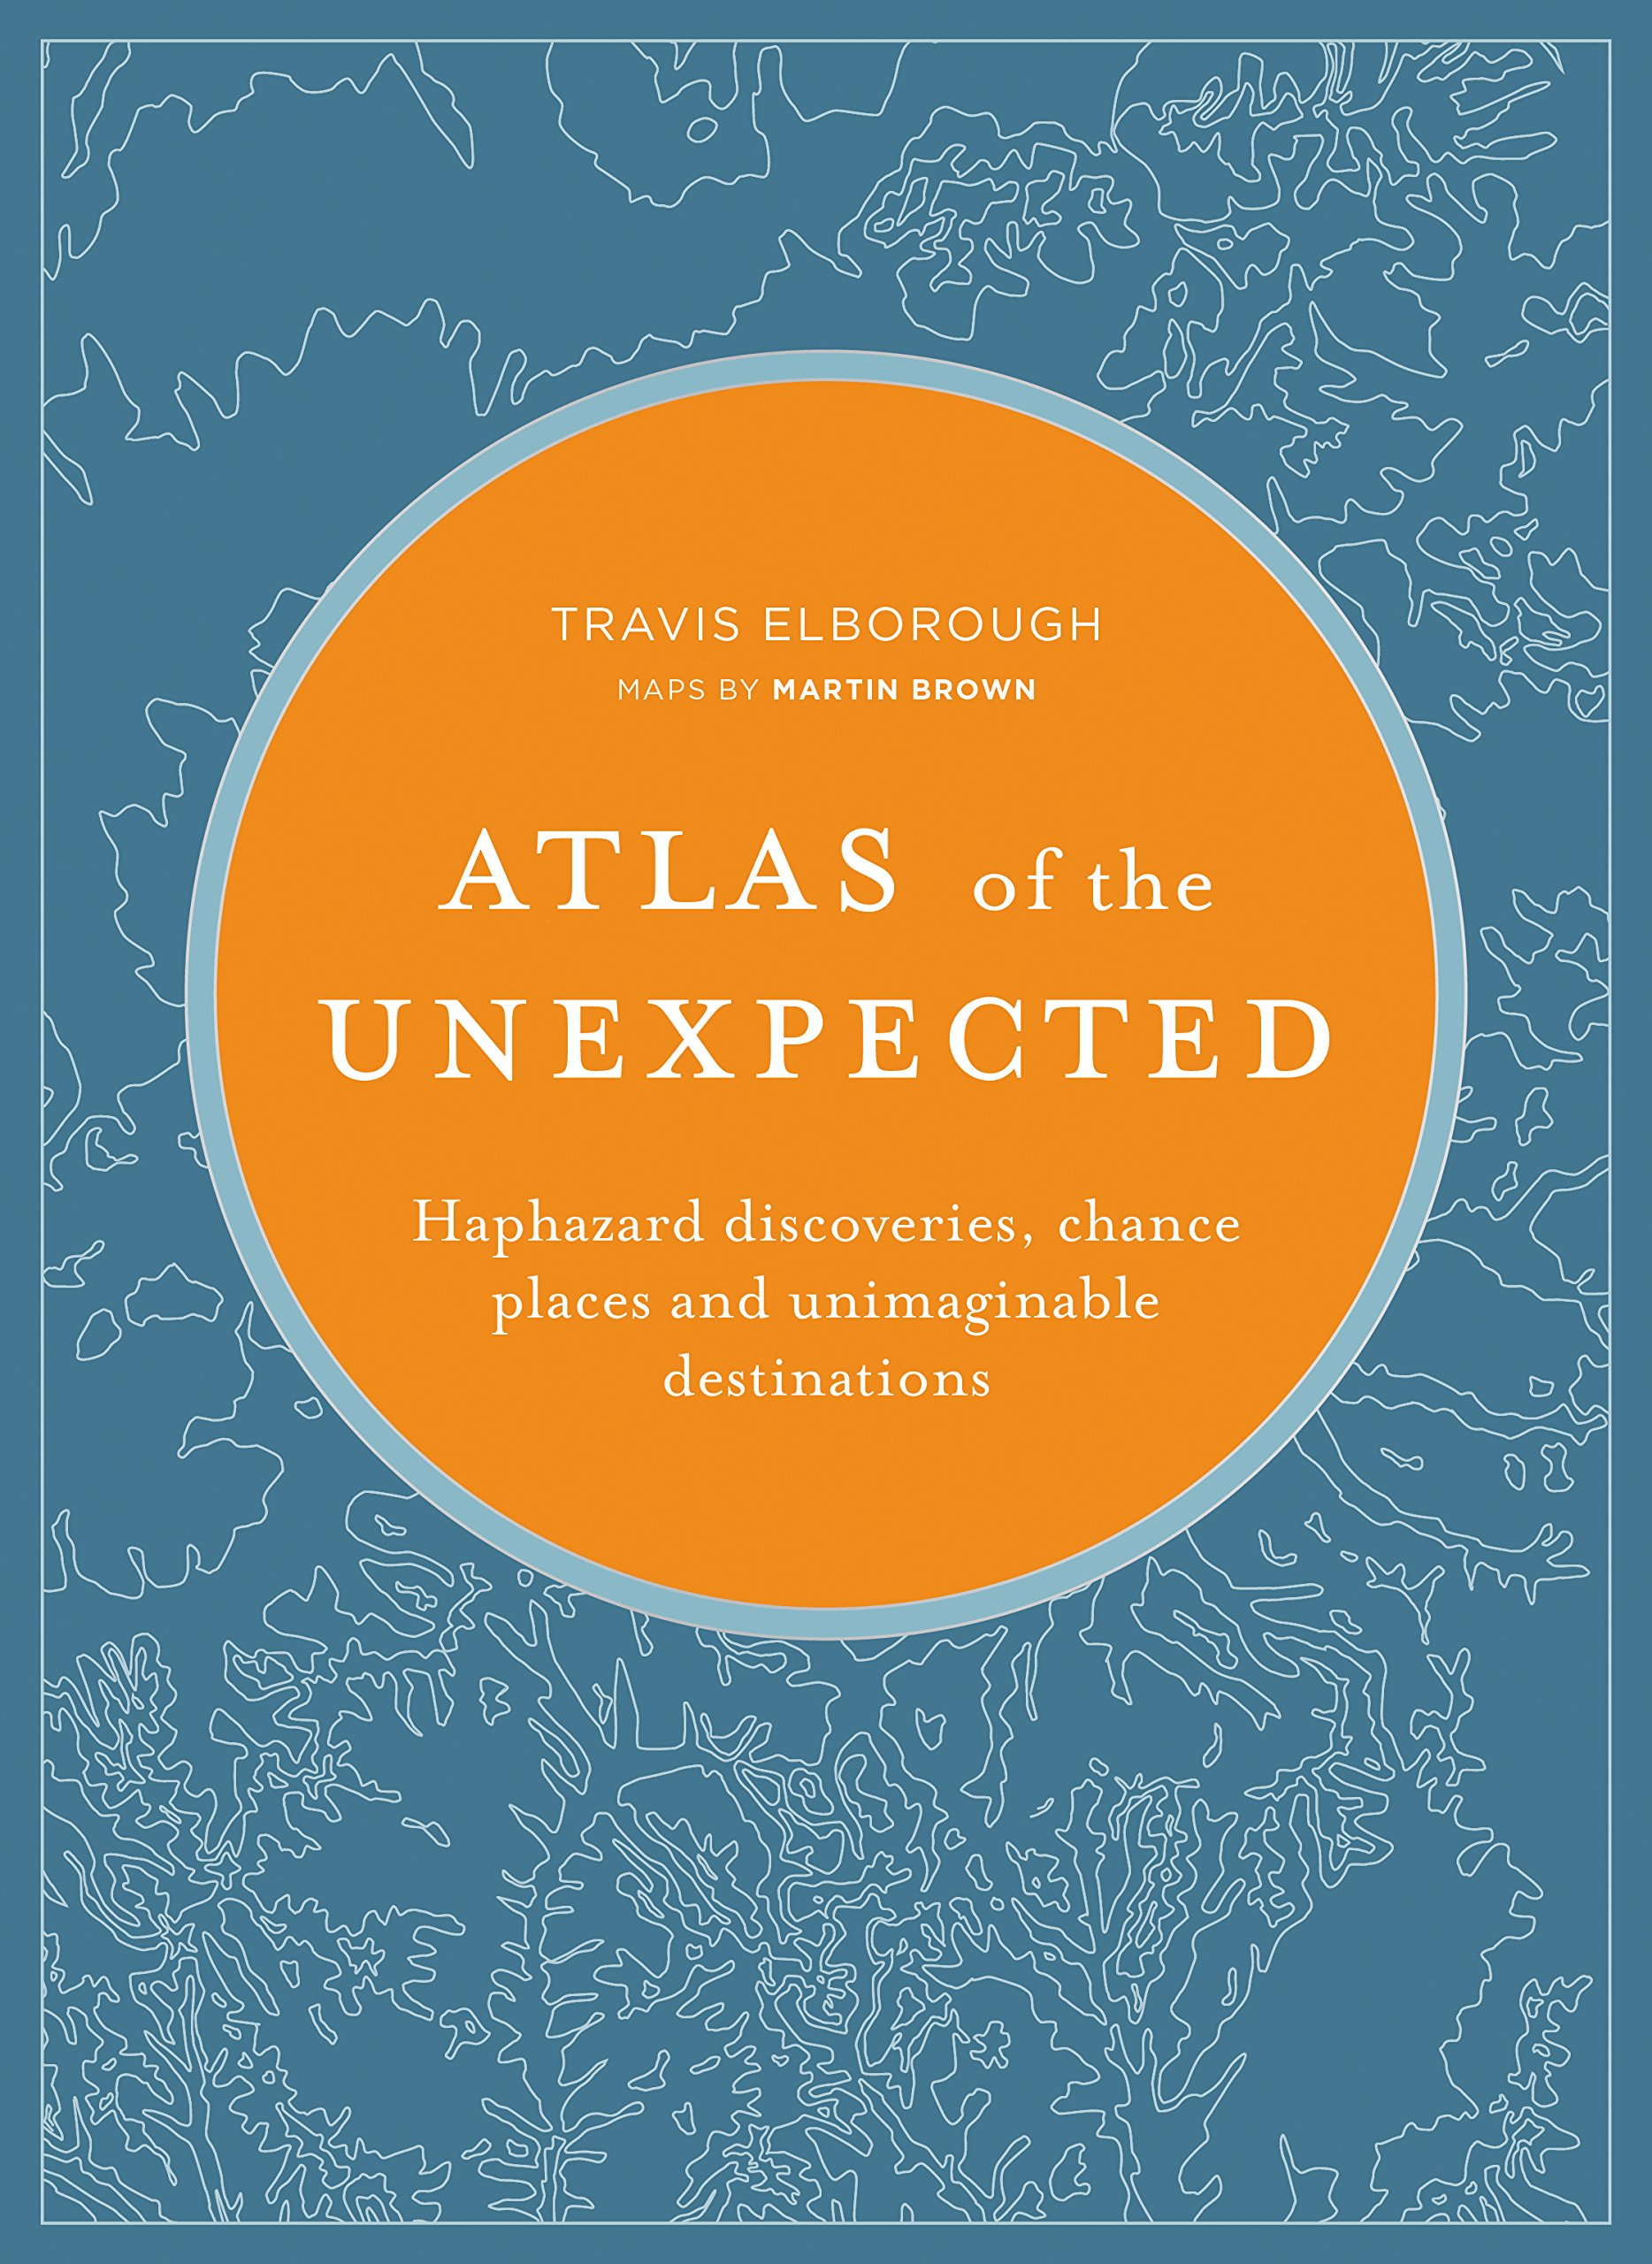 Atlas of the Unexpected: Haphazard discoveries, chance places and unimaginable destinations (Unexpected Atlases) by White Lion Publishing